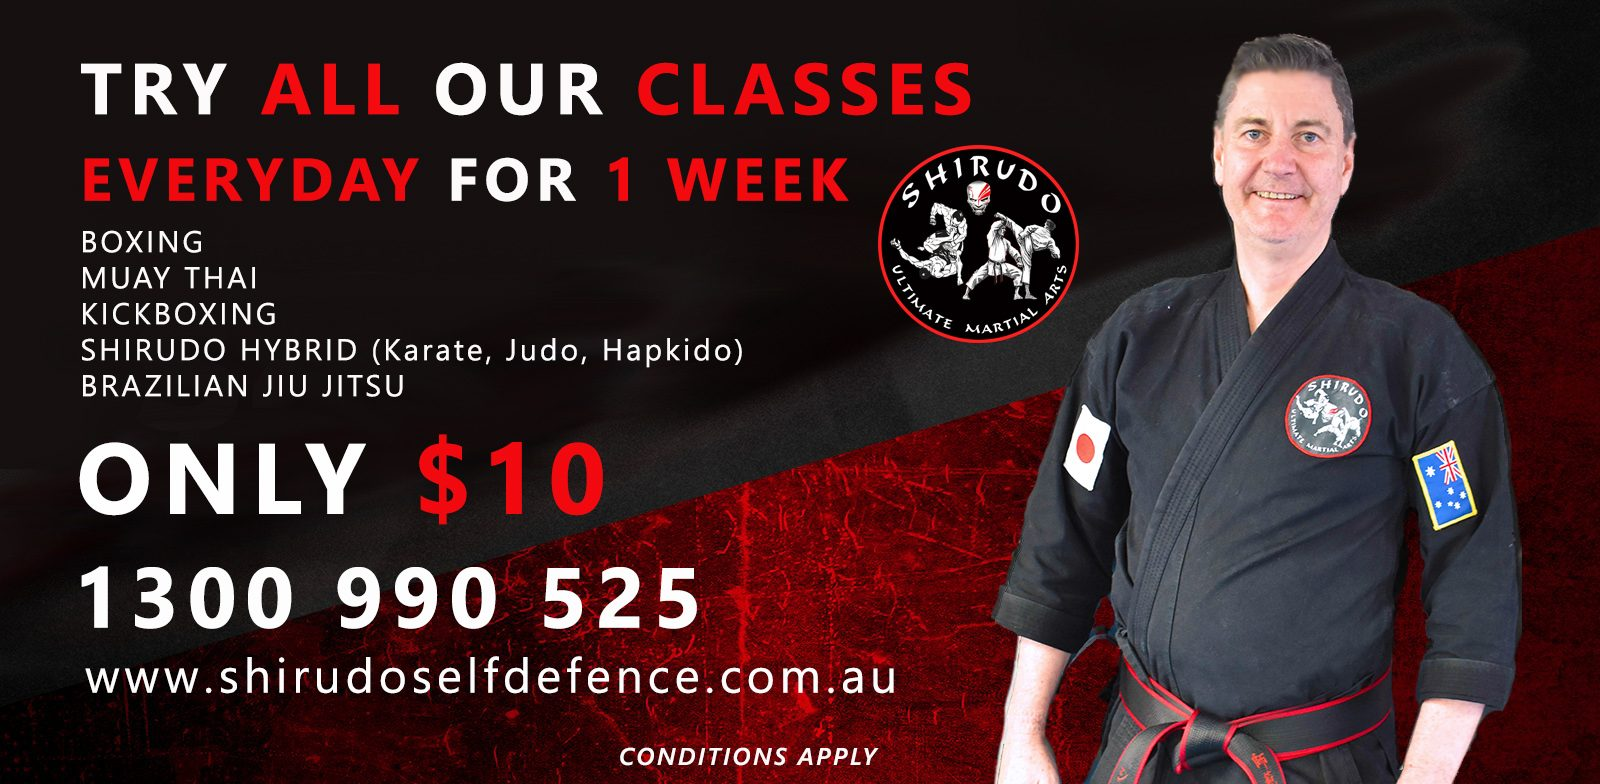 $10 for all classes for 1 week